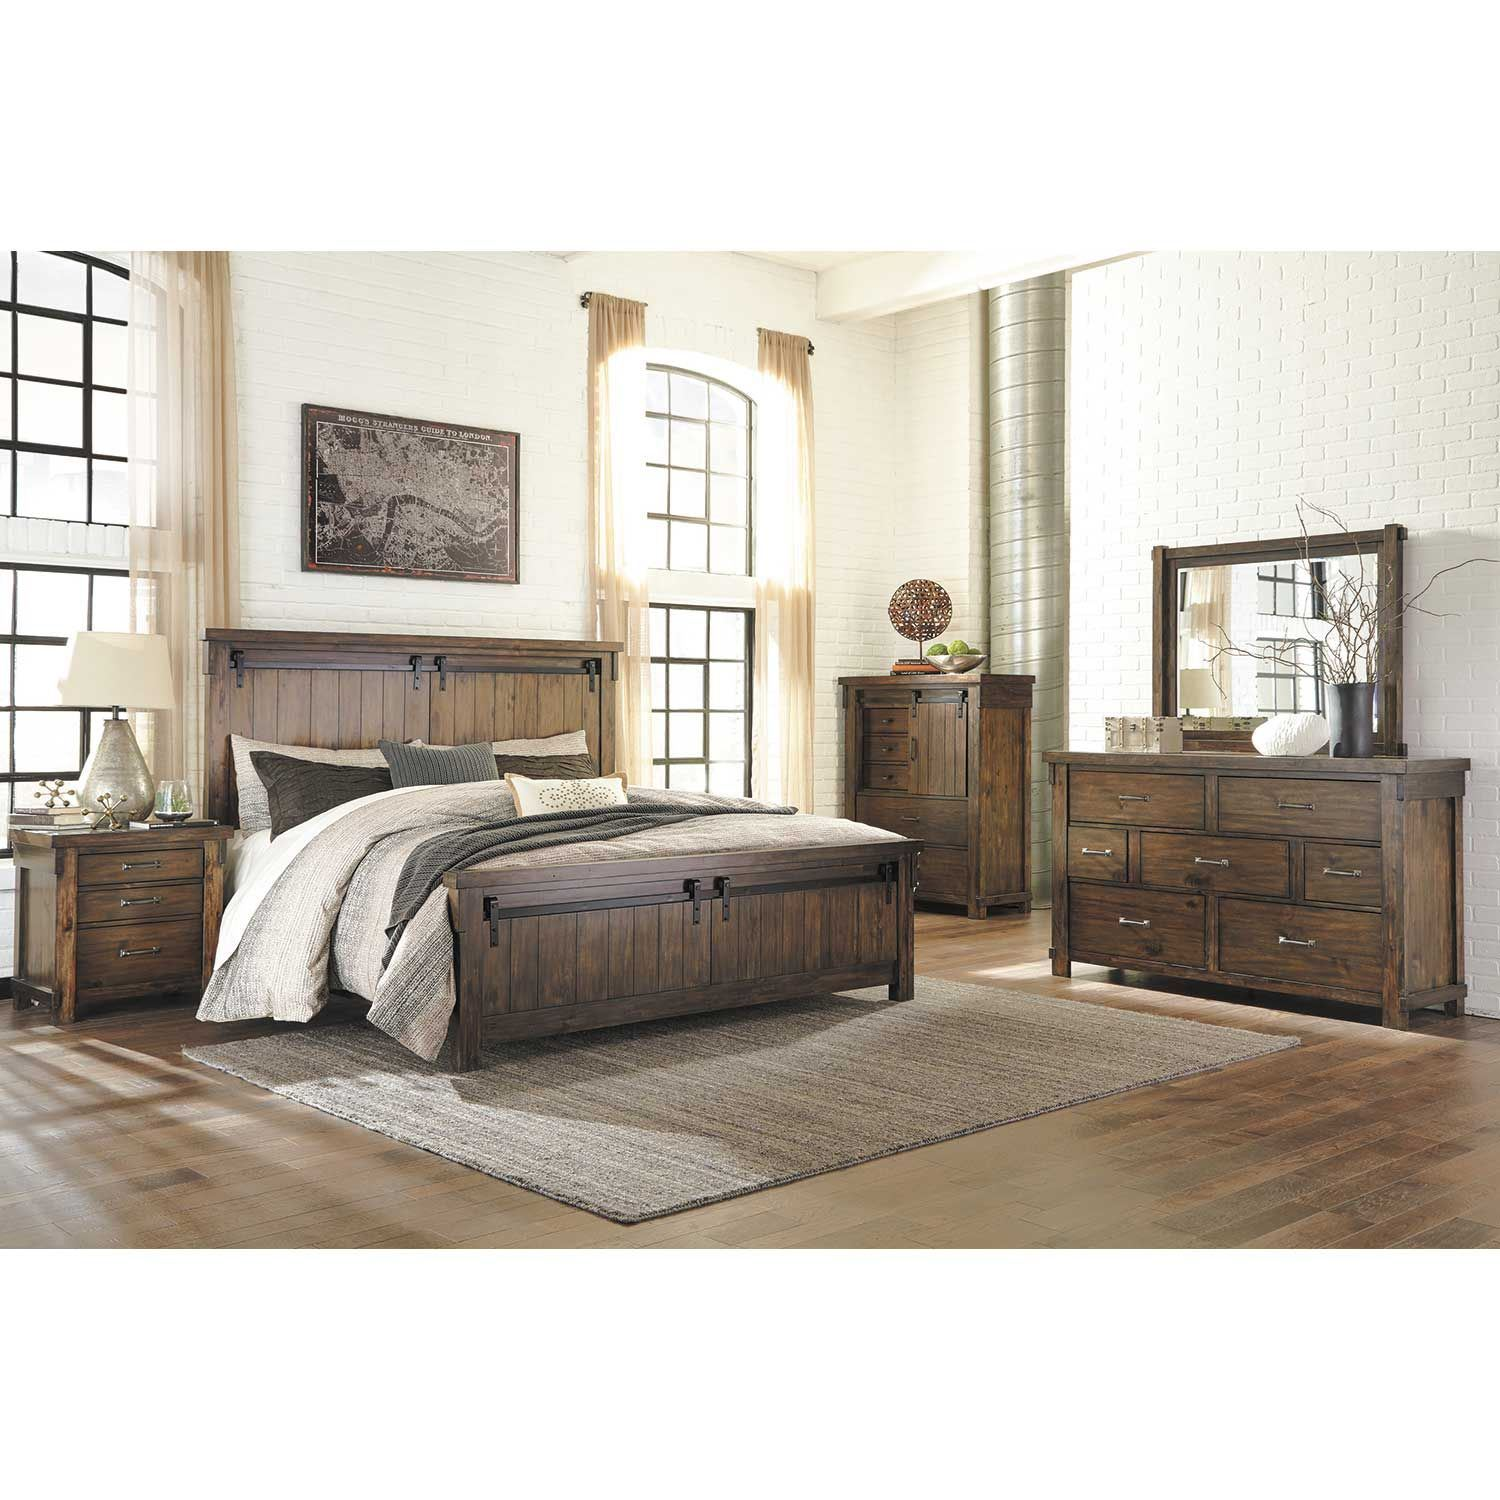 Lakeleigh 5 Piece Bedroom Set B718 Qbed 31 36 46 93 Ashley